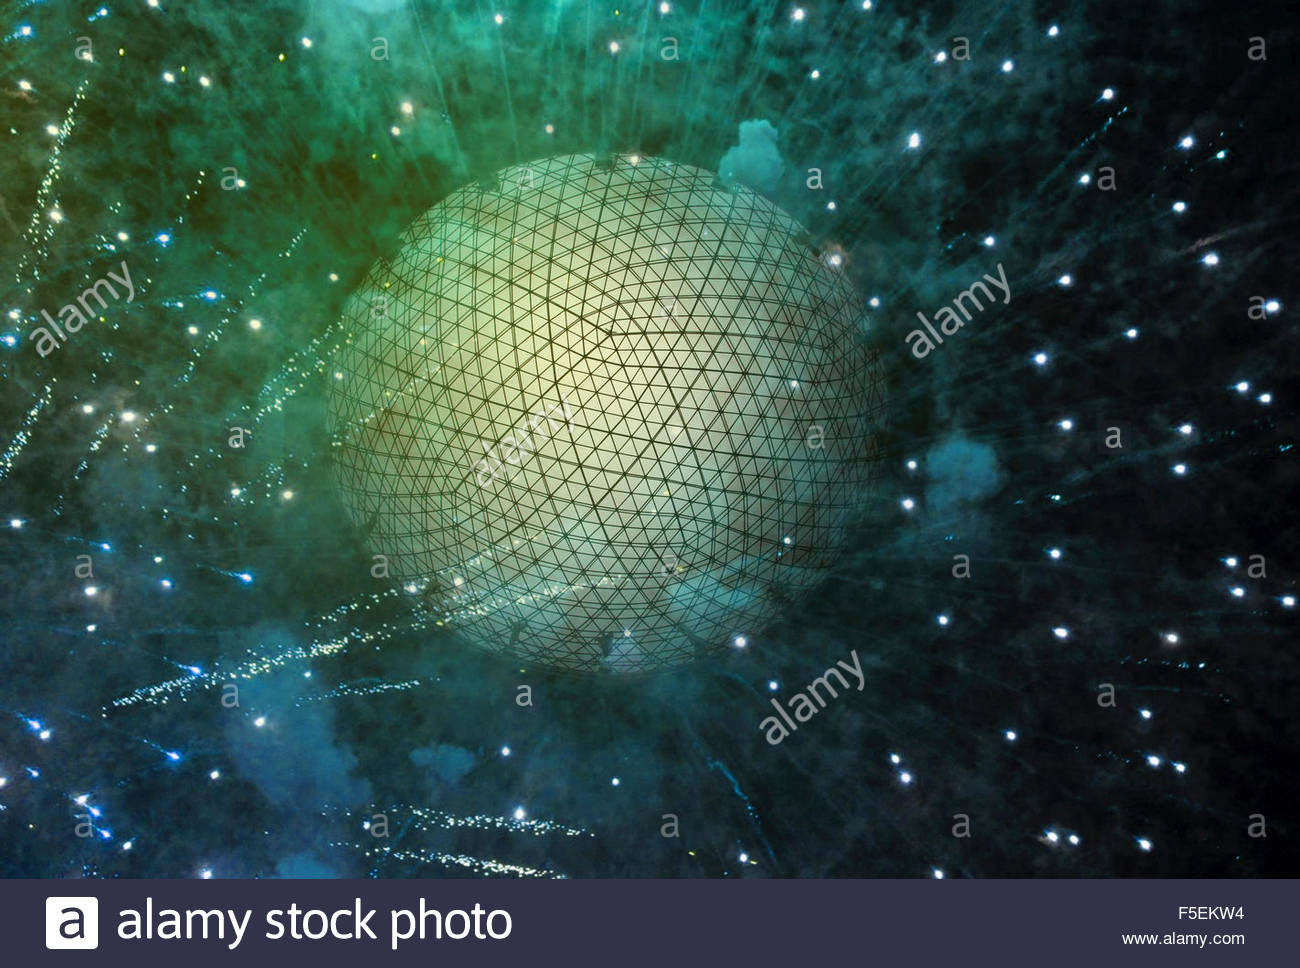 Grid pattern over exploding sphere - Stock Image